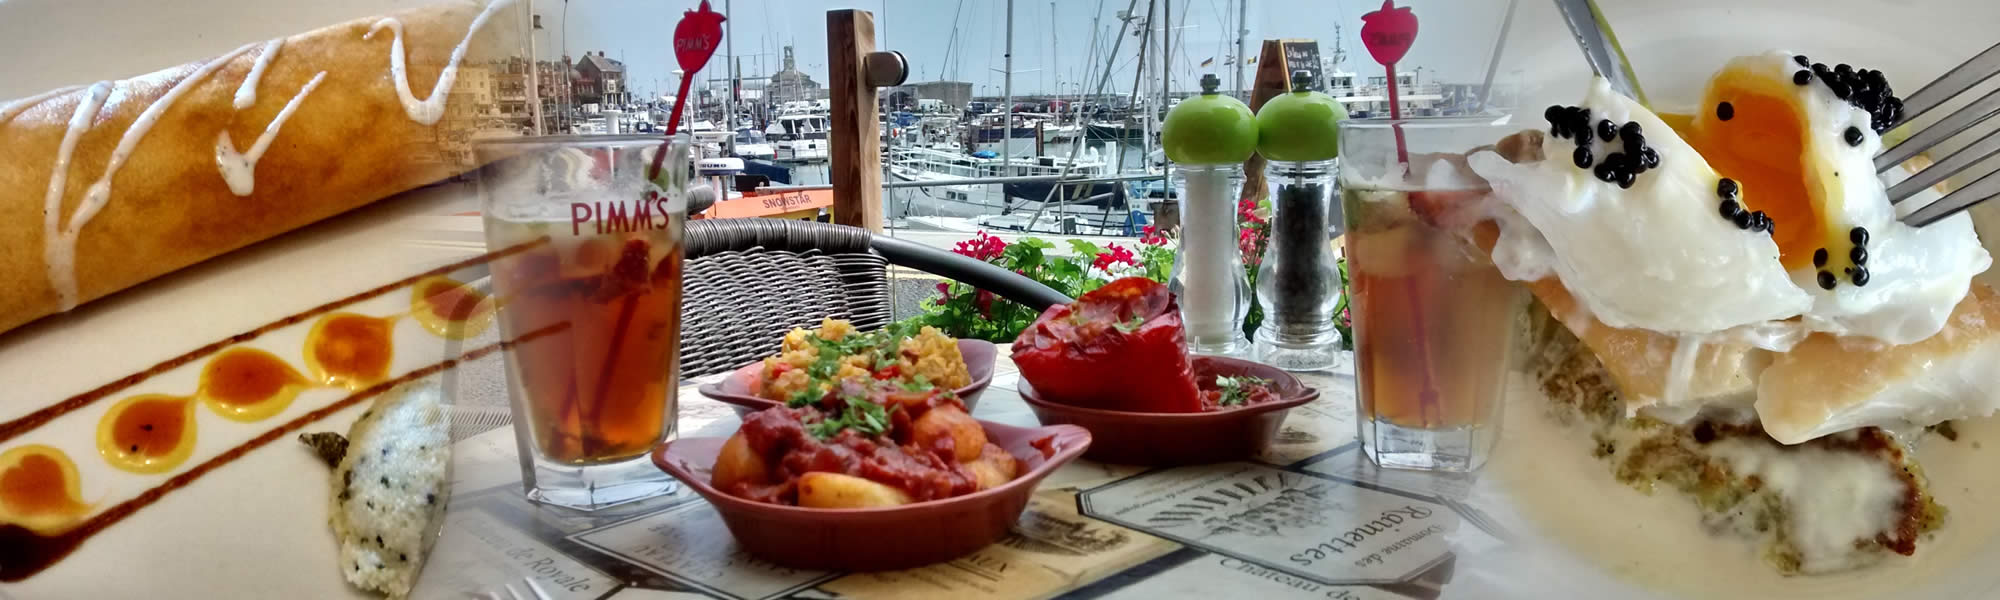 Eating in Ramsgate - Visit Ramsgate